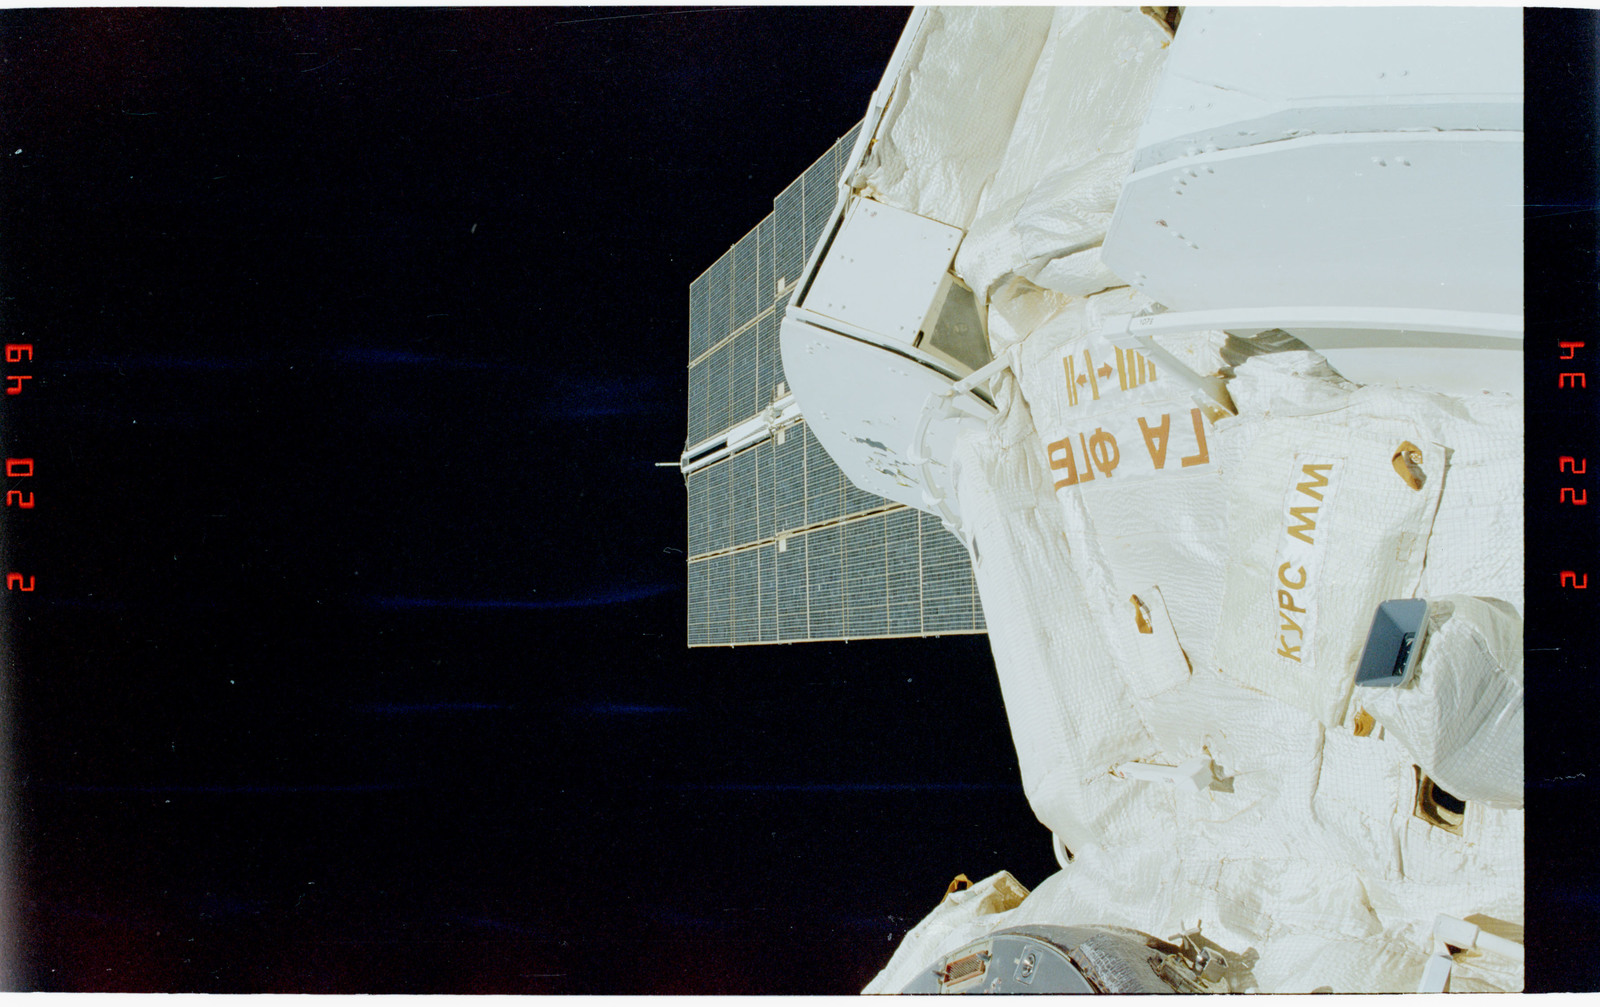 STS088-355-025 - STS-088 - View of the FGB/Zarya modules during EVA